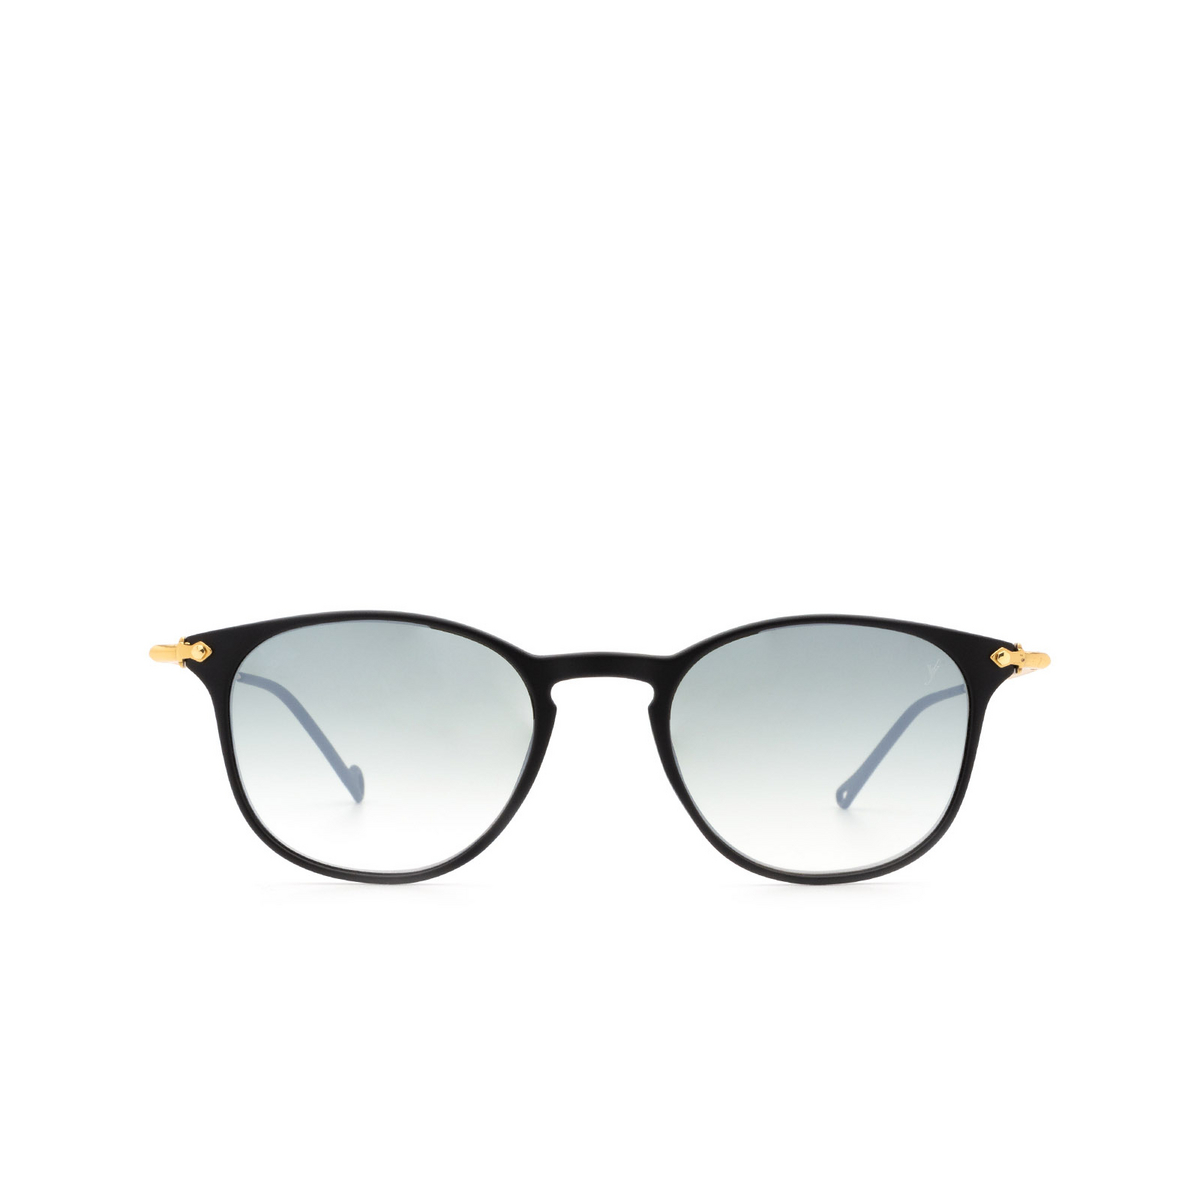 Eyepetizer® Square Sunglasses: Montauk color Black C.A-4-25F - front view.